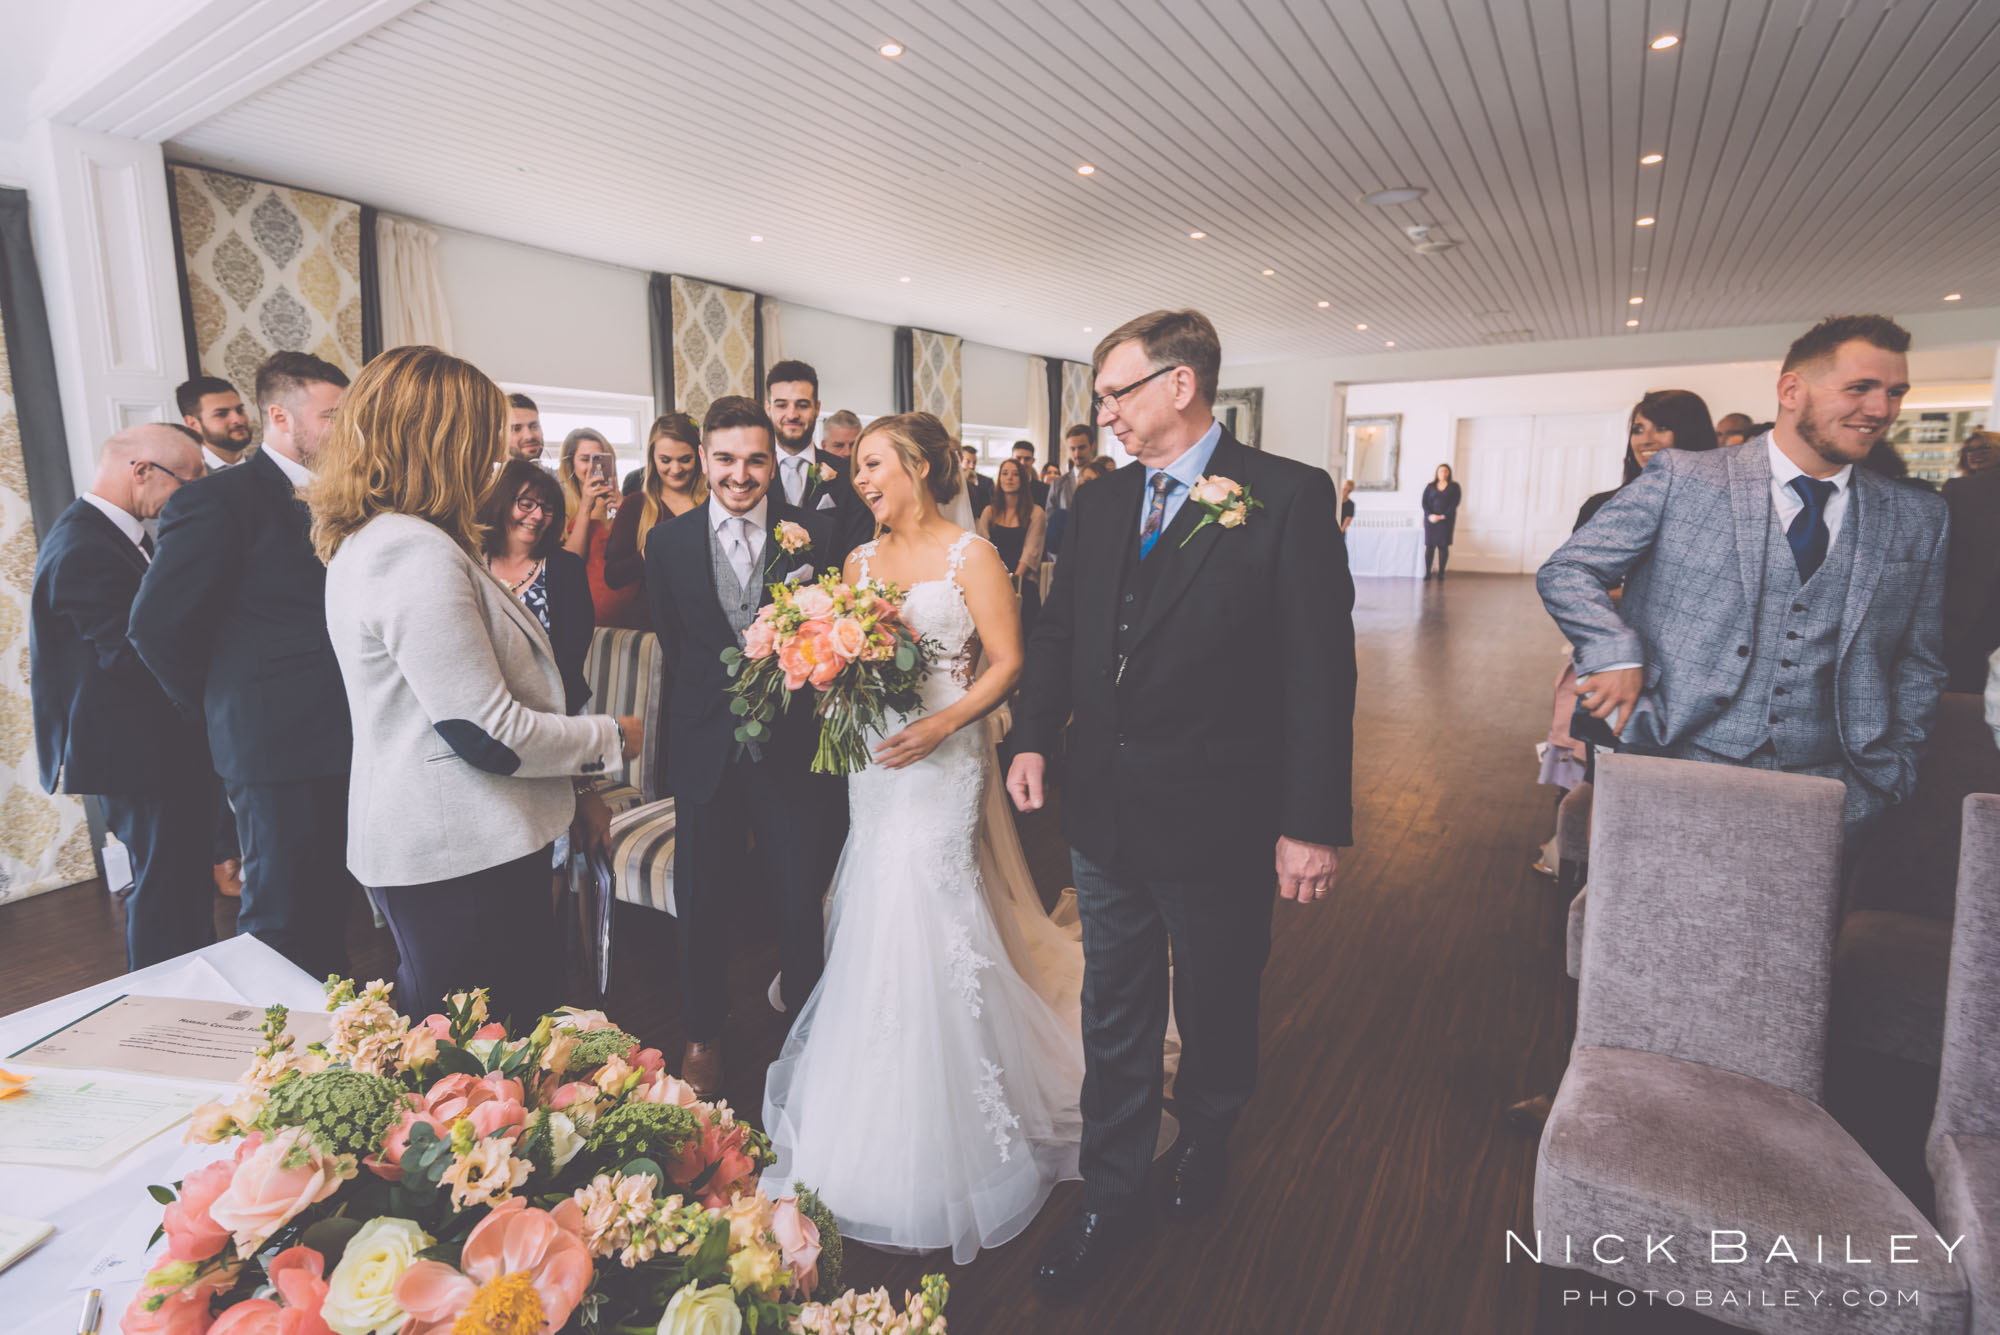 Carbis-Bay-Hotel-Wedding-Photography-22.jpg